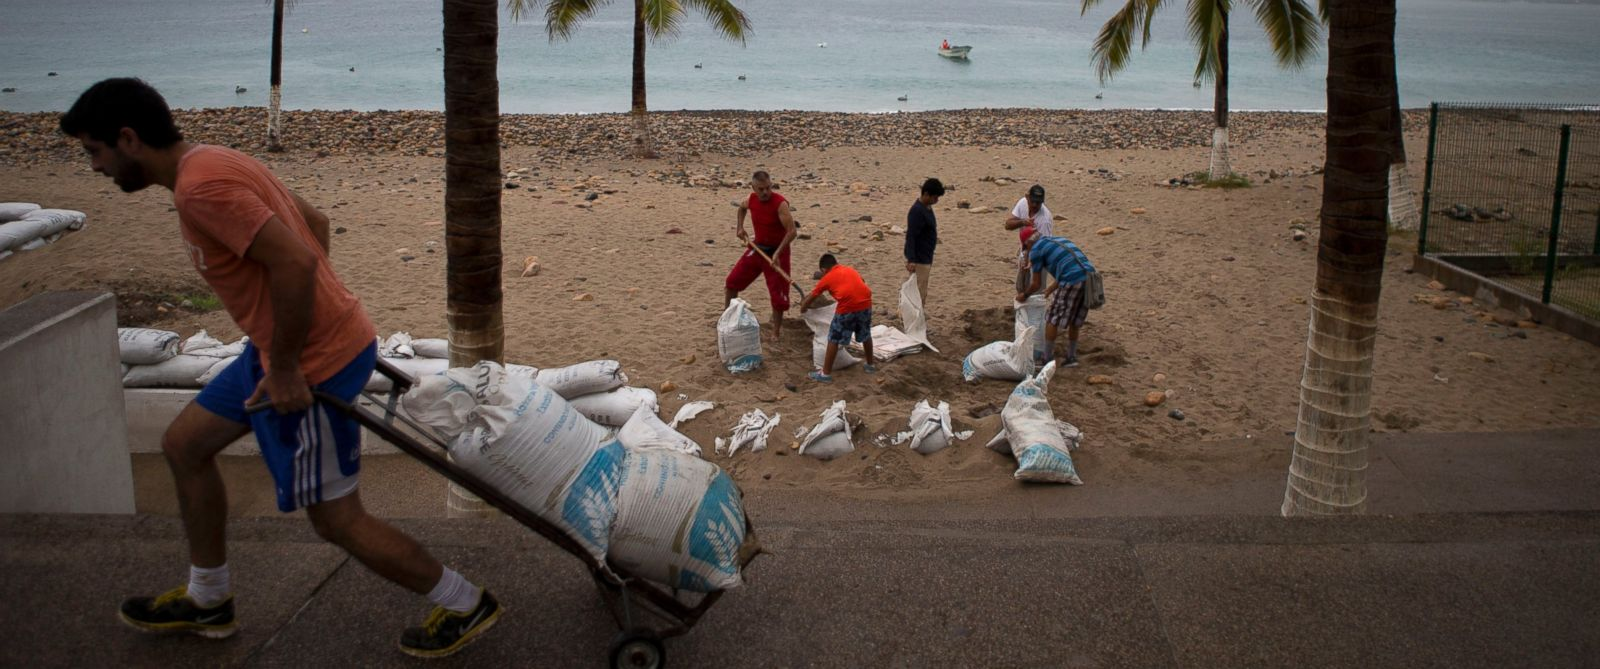 PHOTO: Residents prepare for the arrival of Hurricane Patricia filling sand bags to protect beachfront businesses, in Puerto Vallarta, Mexico, Oct. 23, 2015.